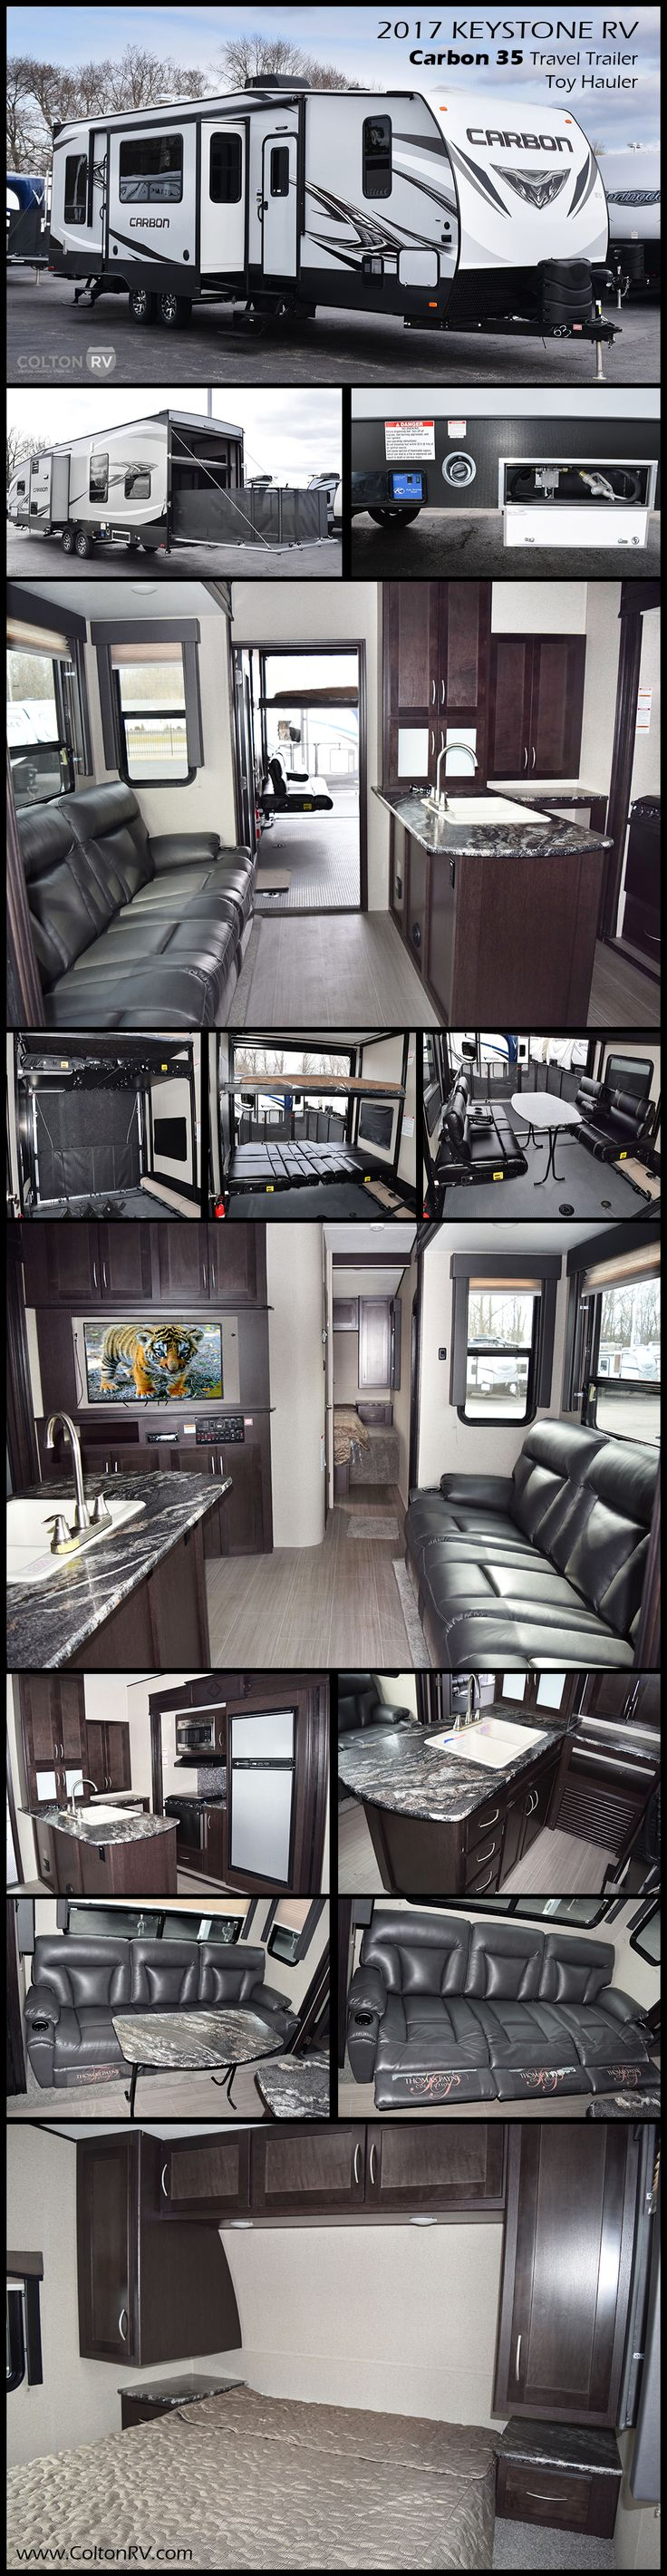 The Carbon 35 Travel Trailer Toy Hauler by Keystone RV has everything a luxury toy hauler offers without the price tag with great high end features at a reasonable price.This model 35 has all the elements one might need for an active weekend away! .